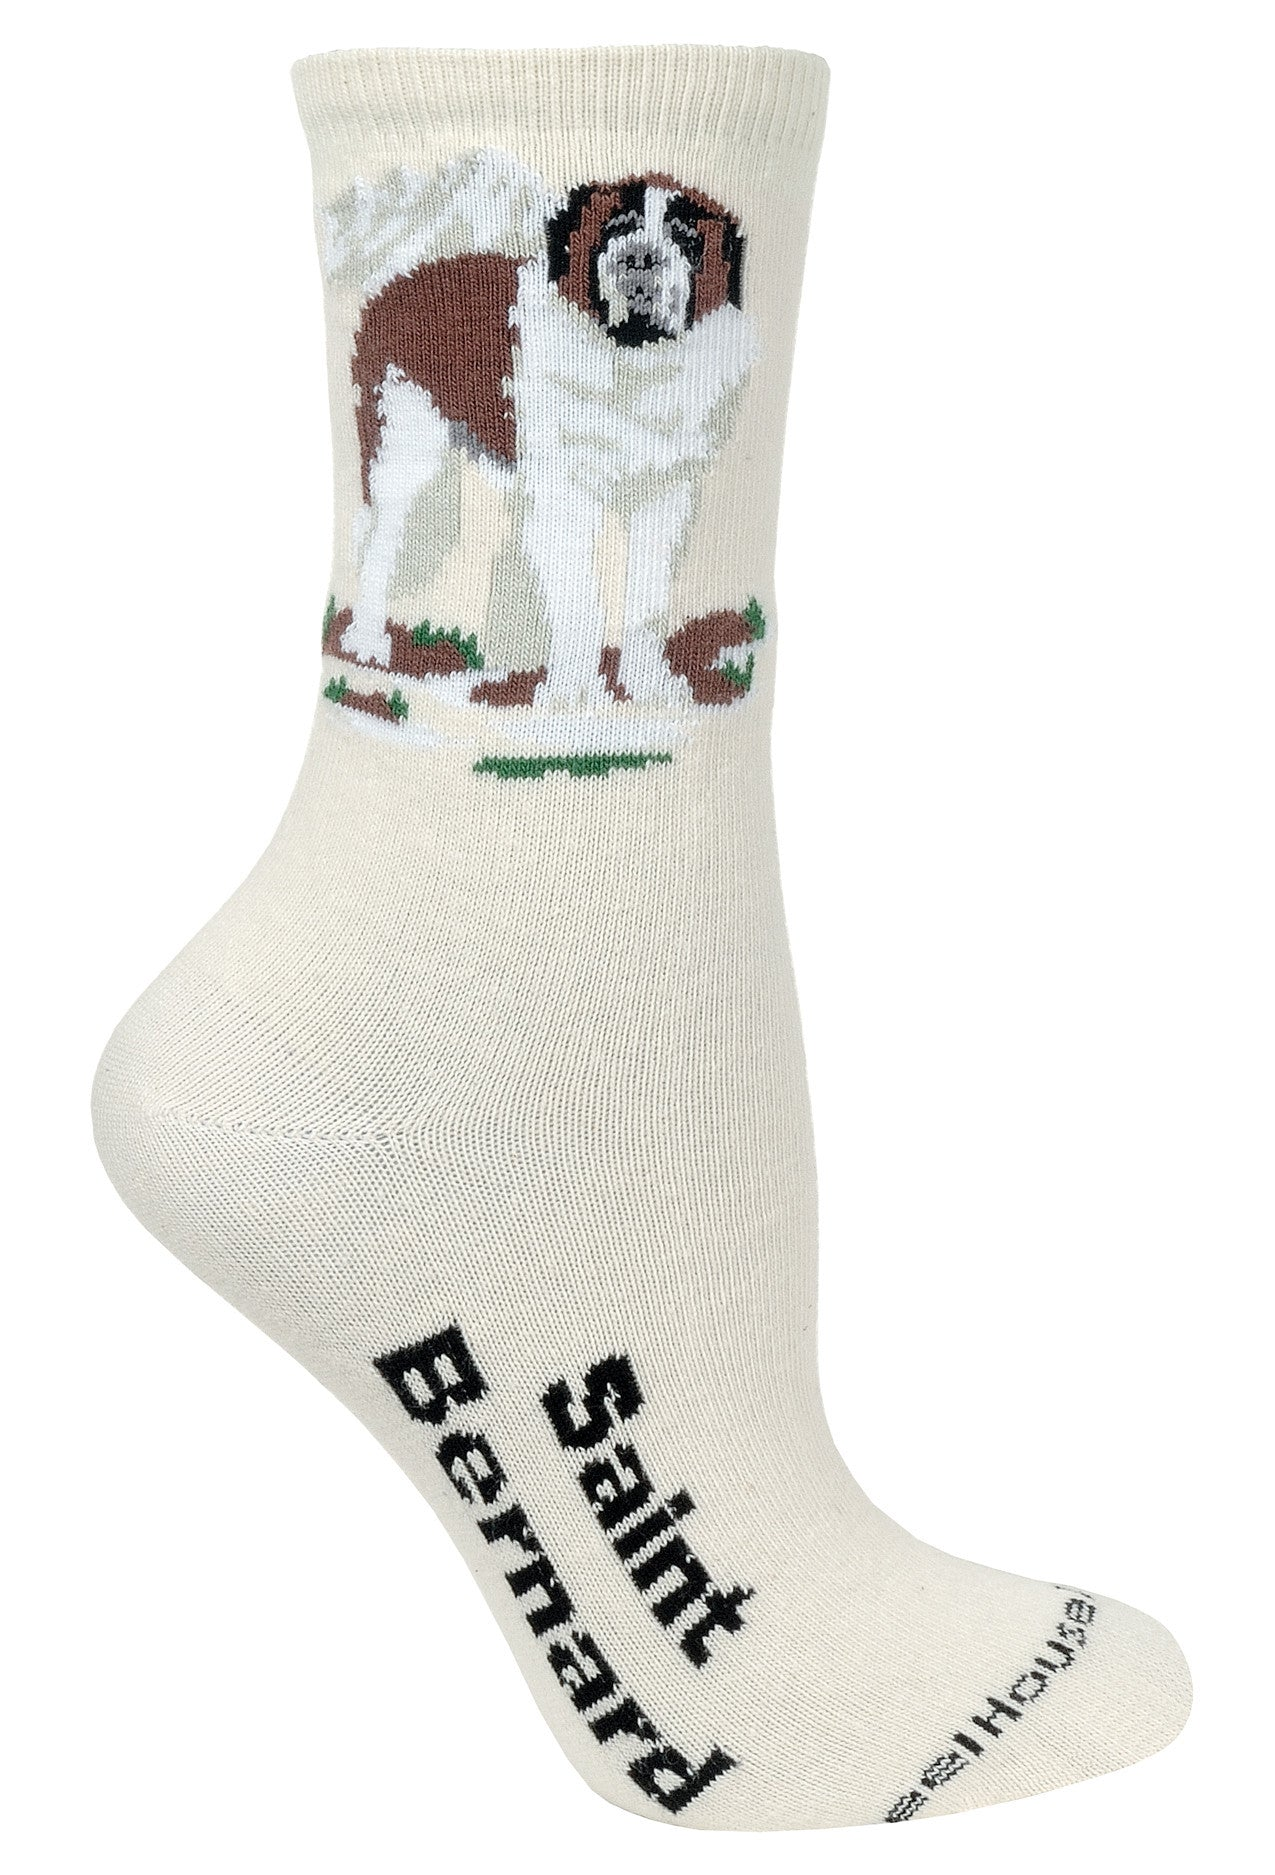 Saint Bernard Crew Socks on Natural